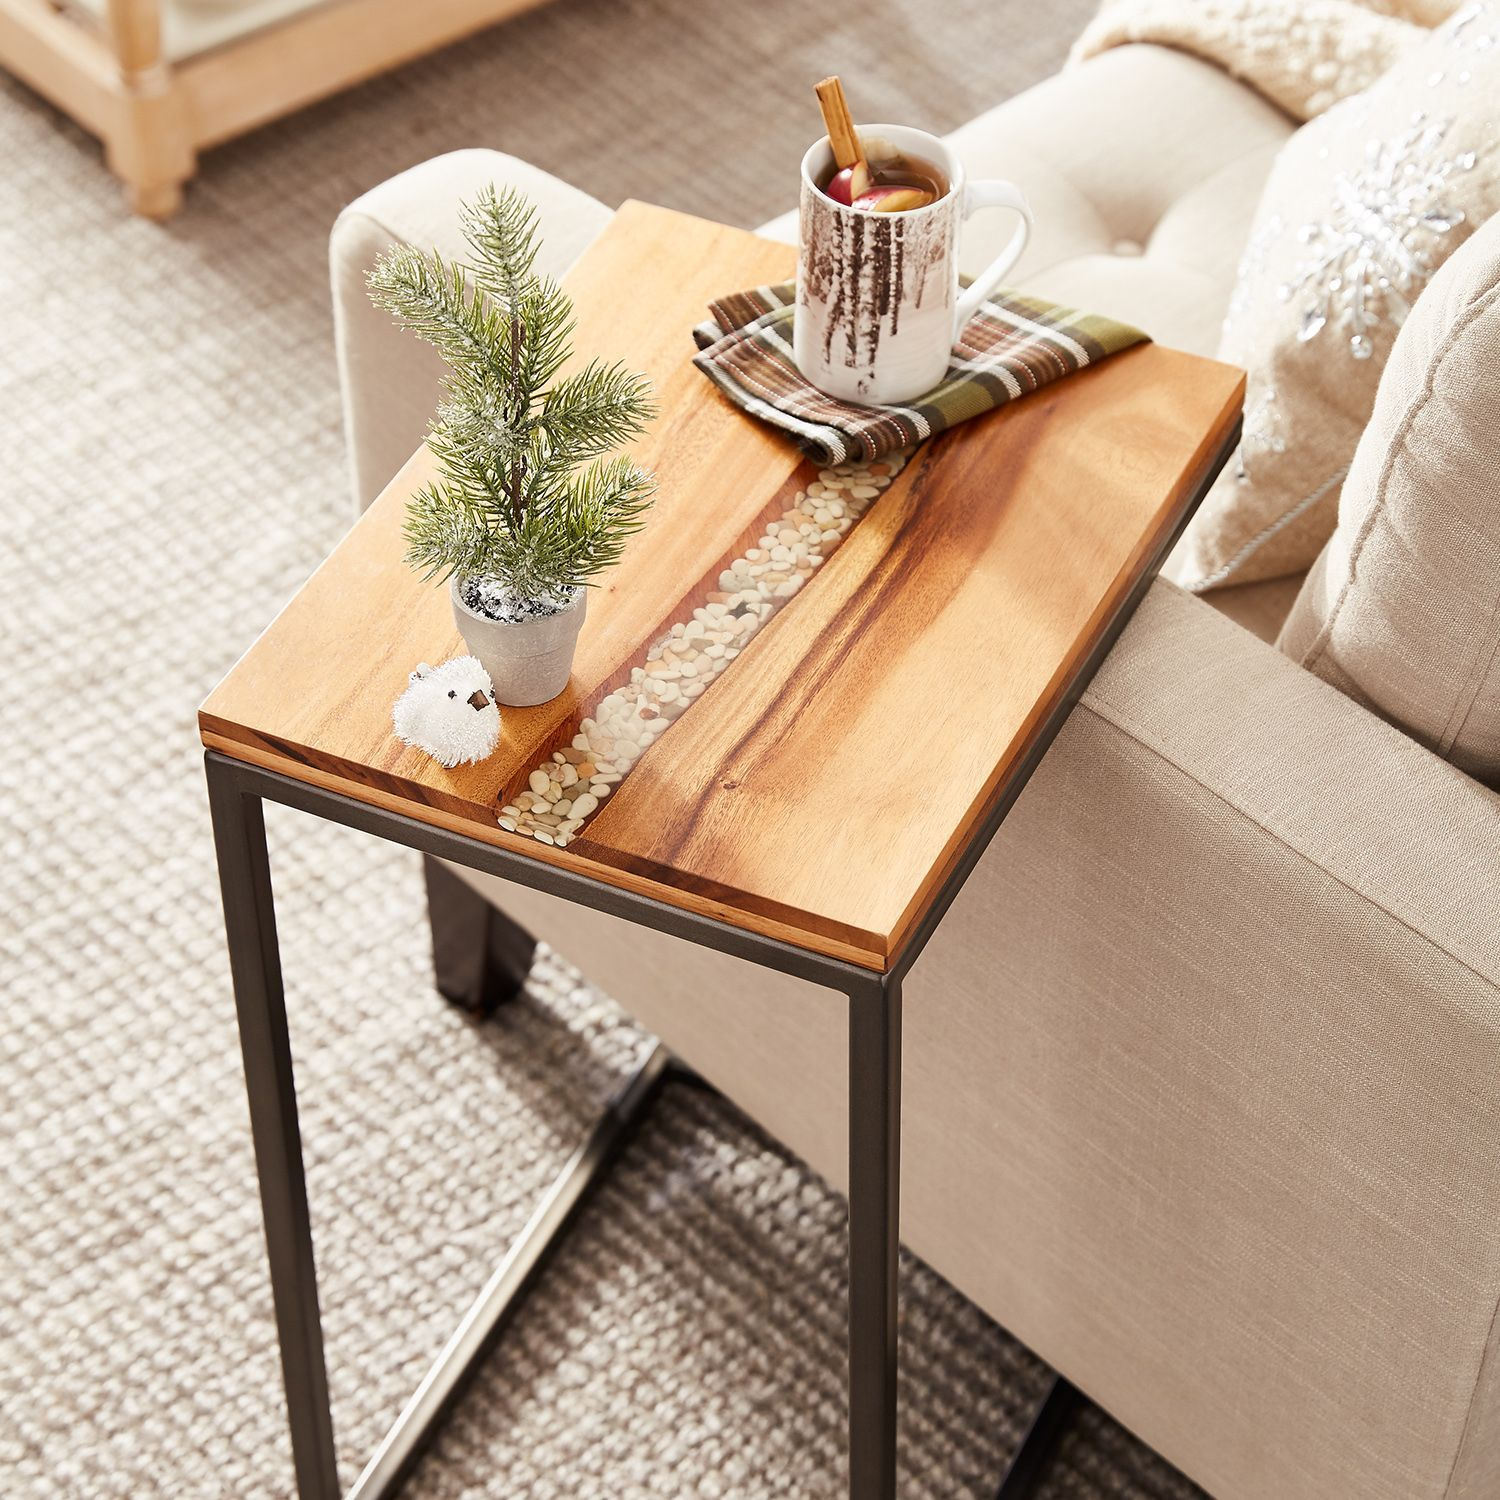 River Rock C Table C Table River House Decor Living Room Table